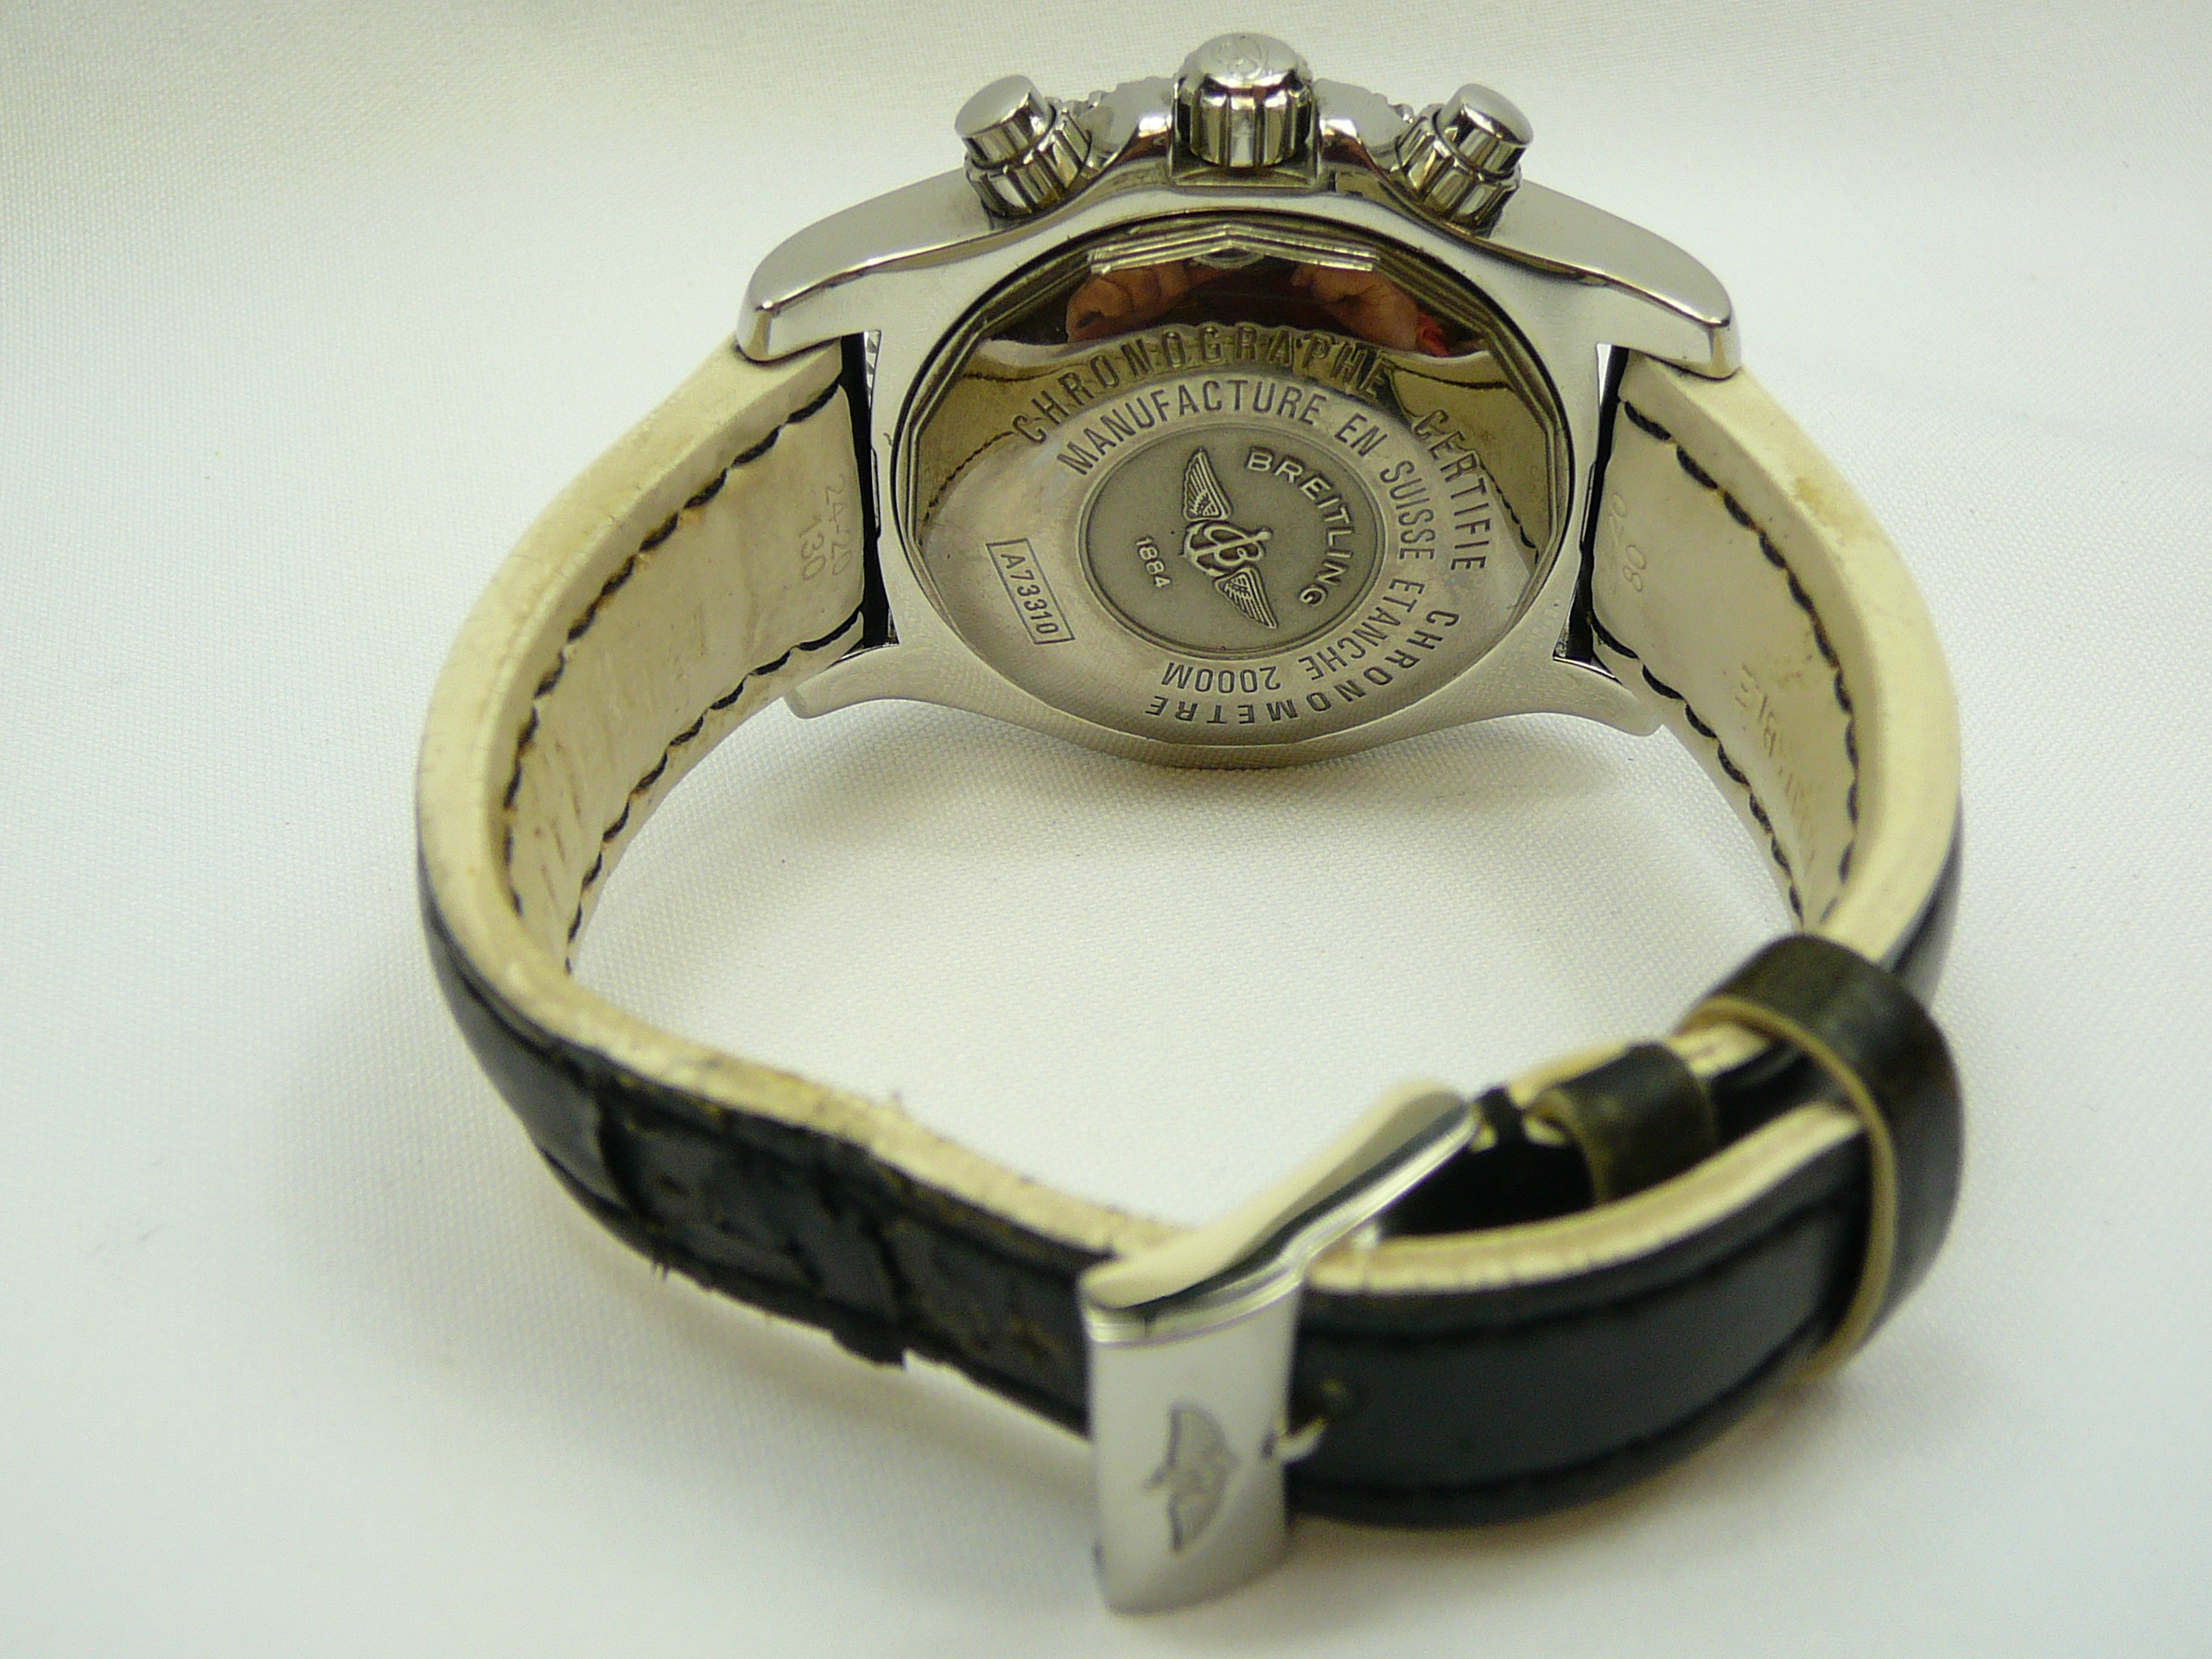 Gents Breitling Wrist Watch - Image 5 of 5